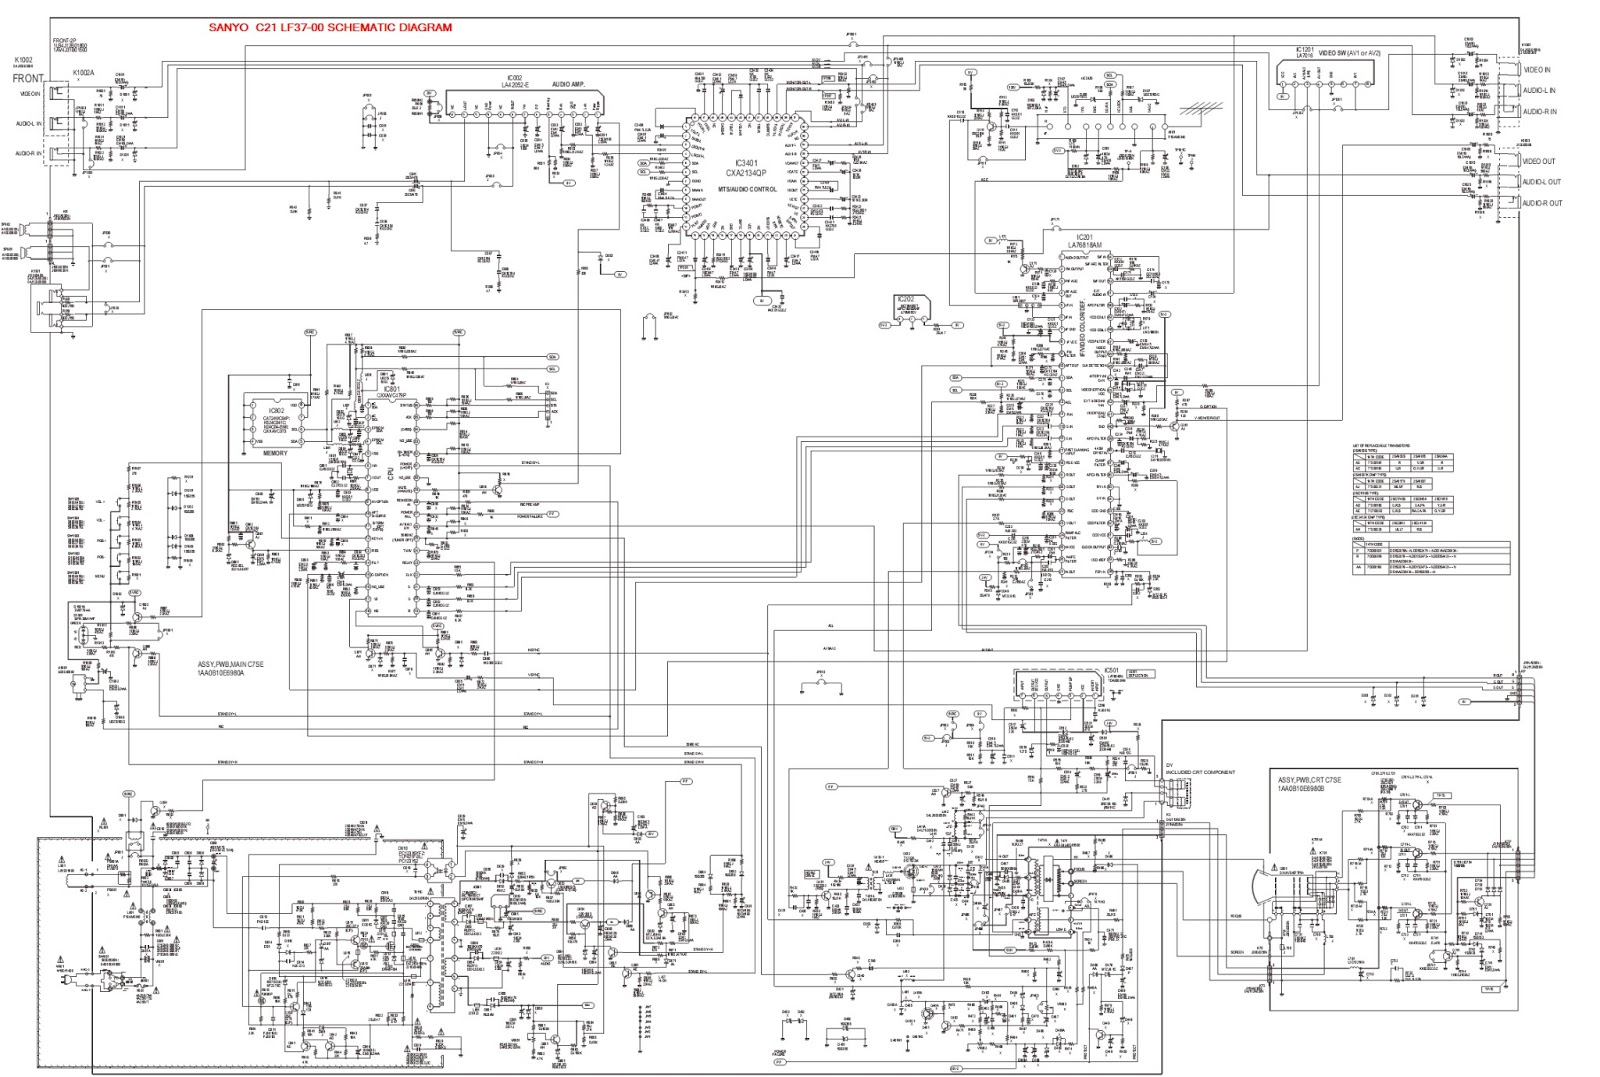 Sanyo 12vdc Relay Wiring Diagram Schematic Diagrams Board Direct Tv Get Free Image About